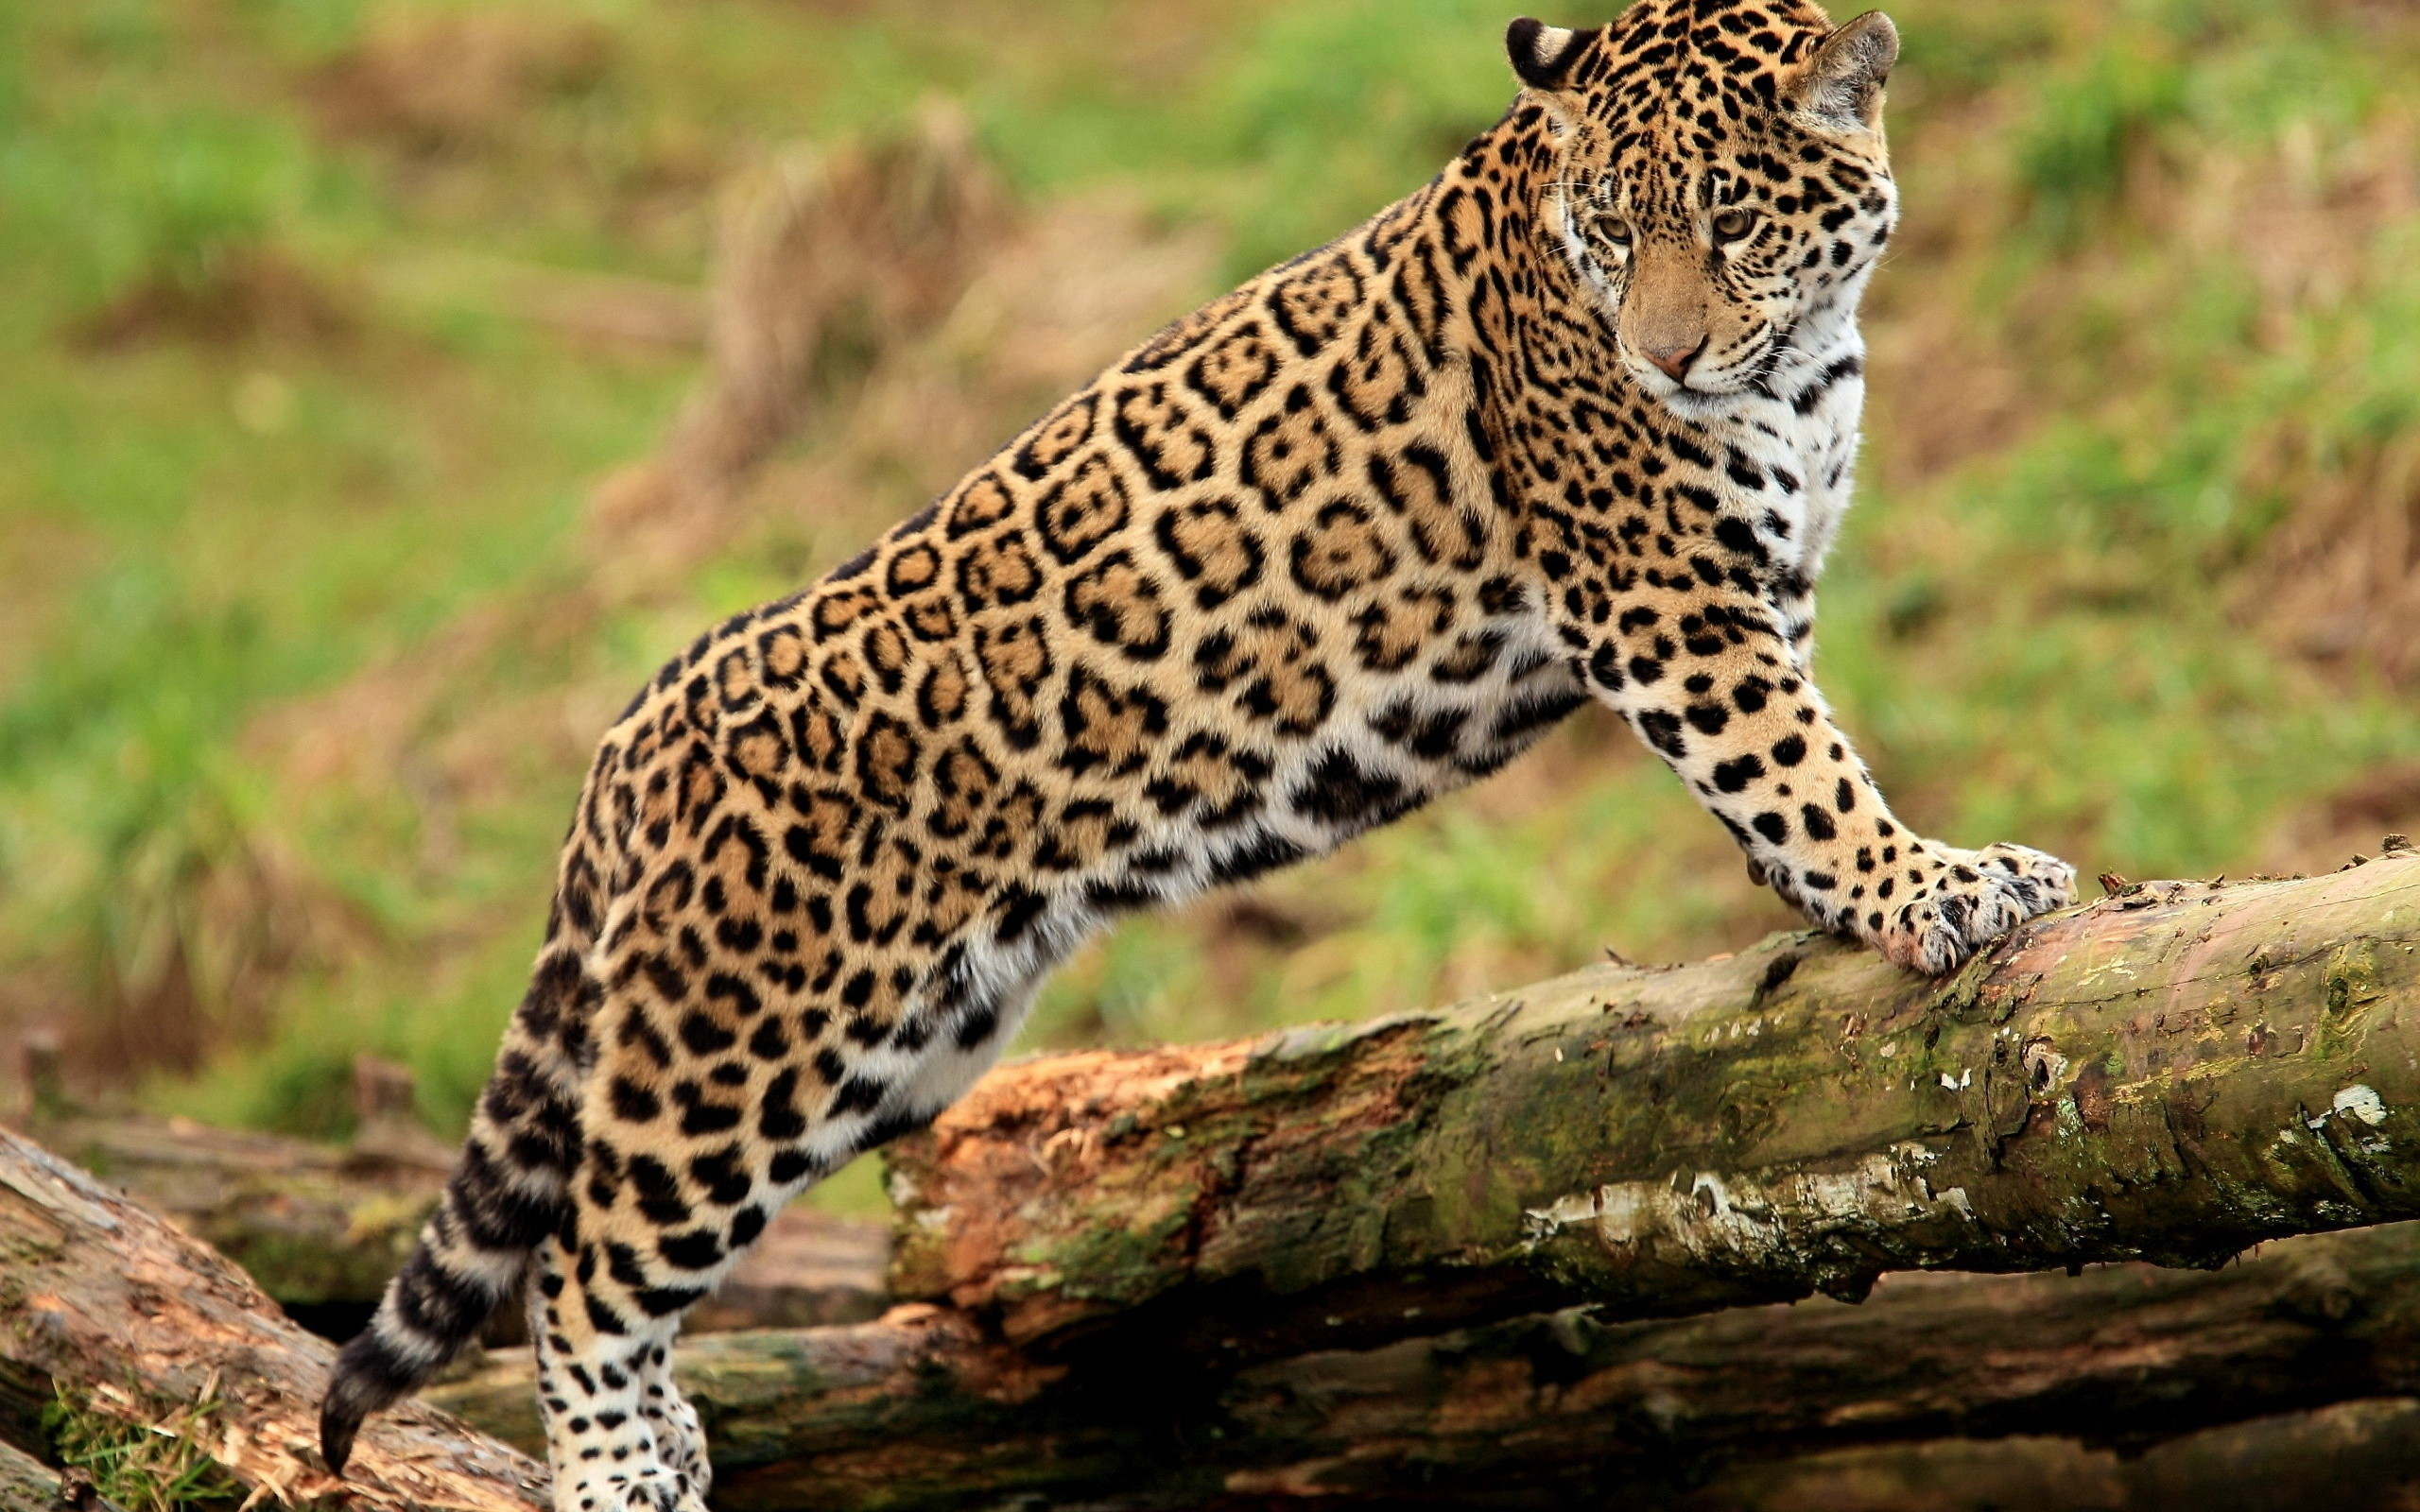 2560x1600 Tiere - Jaguar Panther Wallpaper